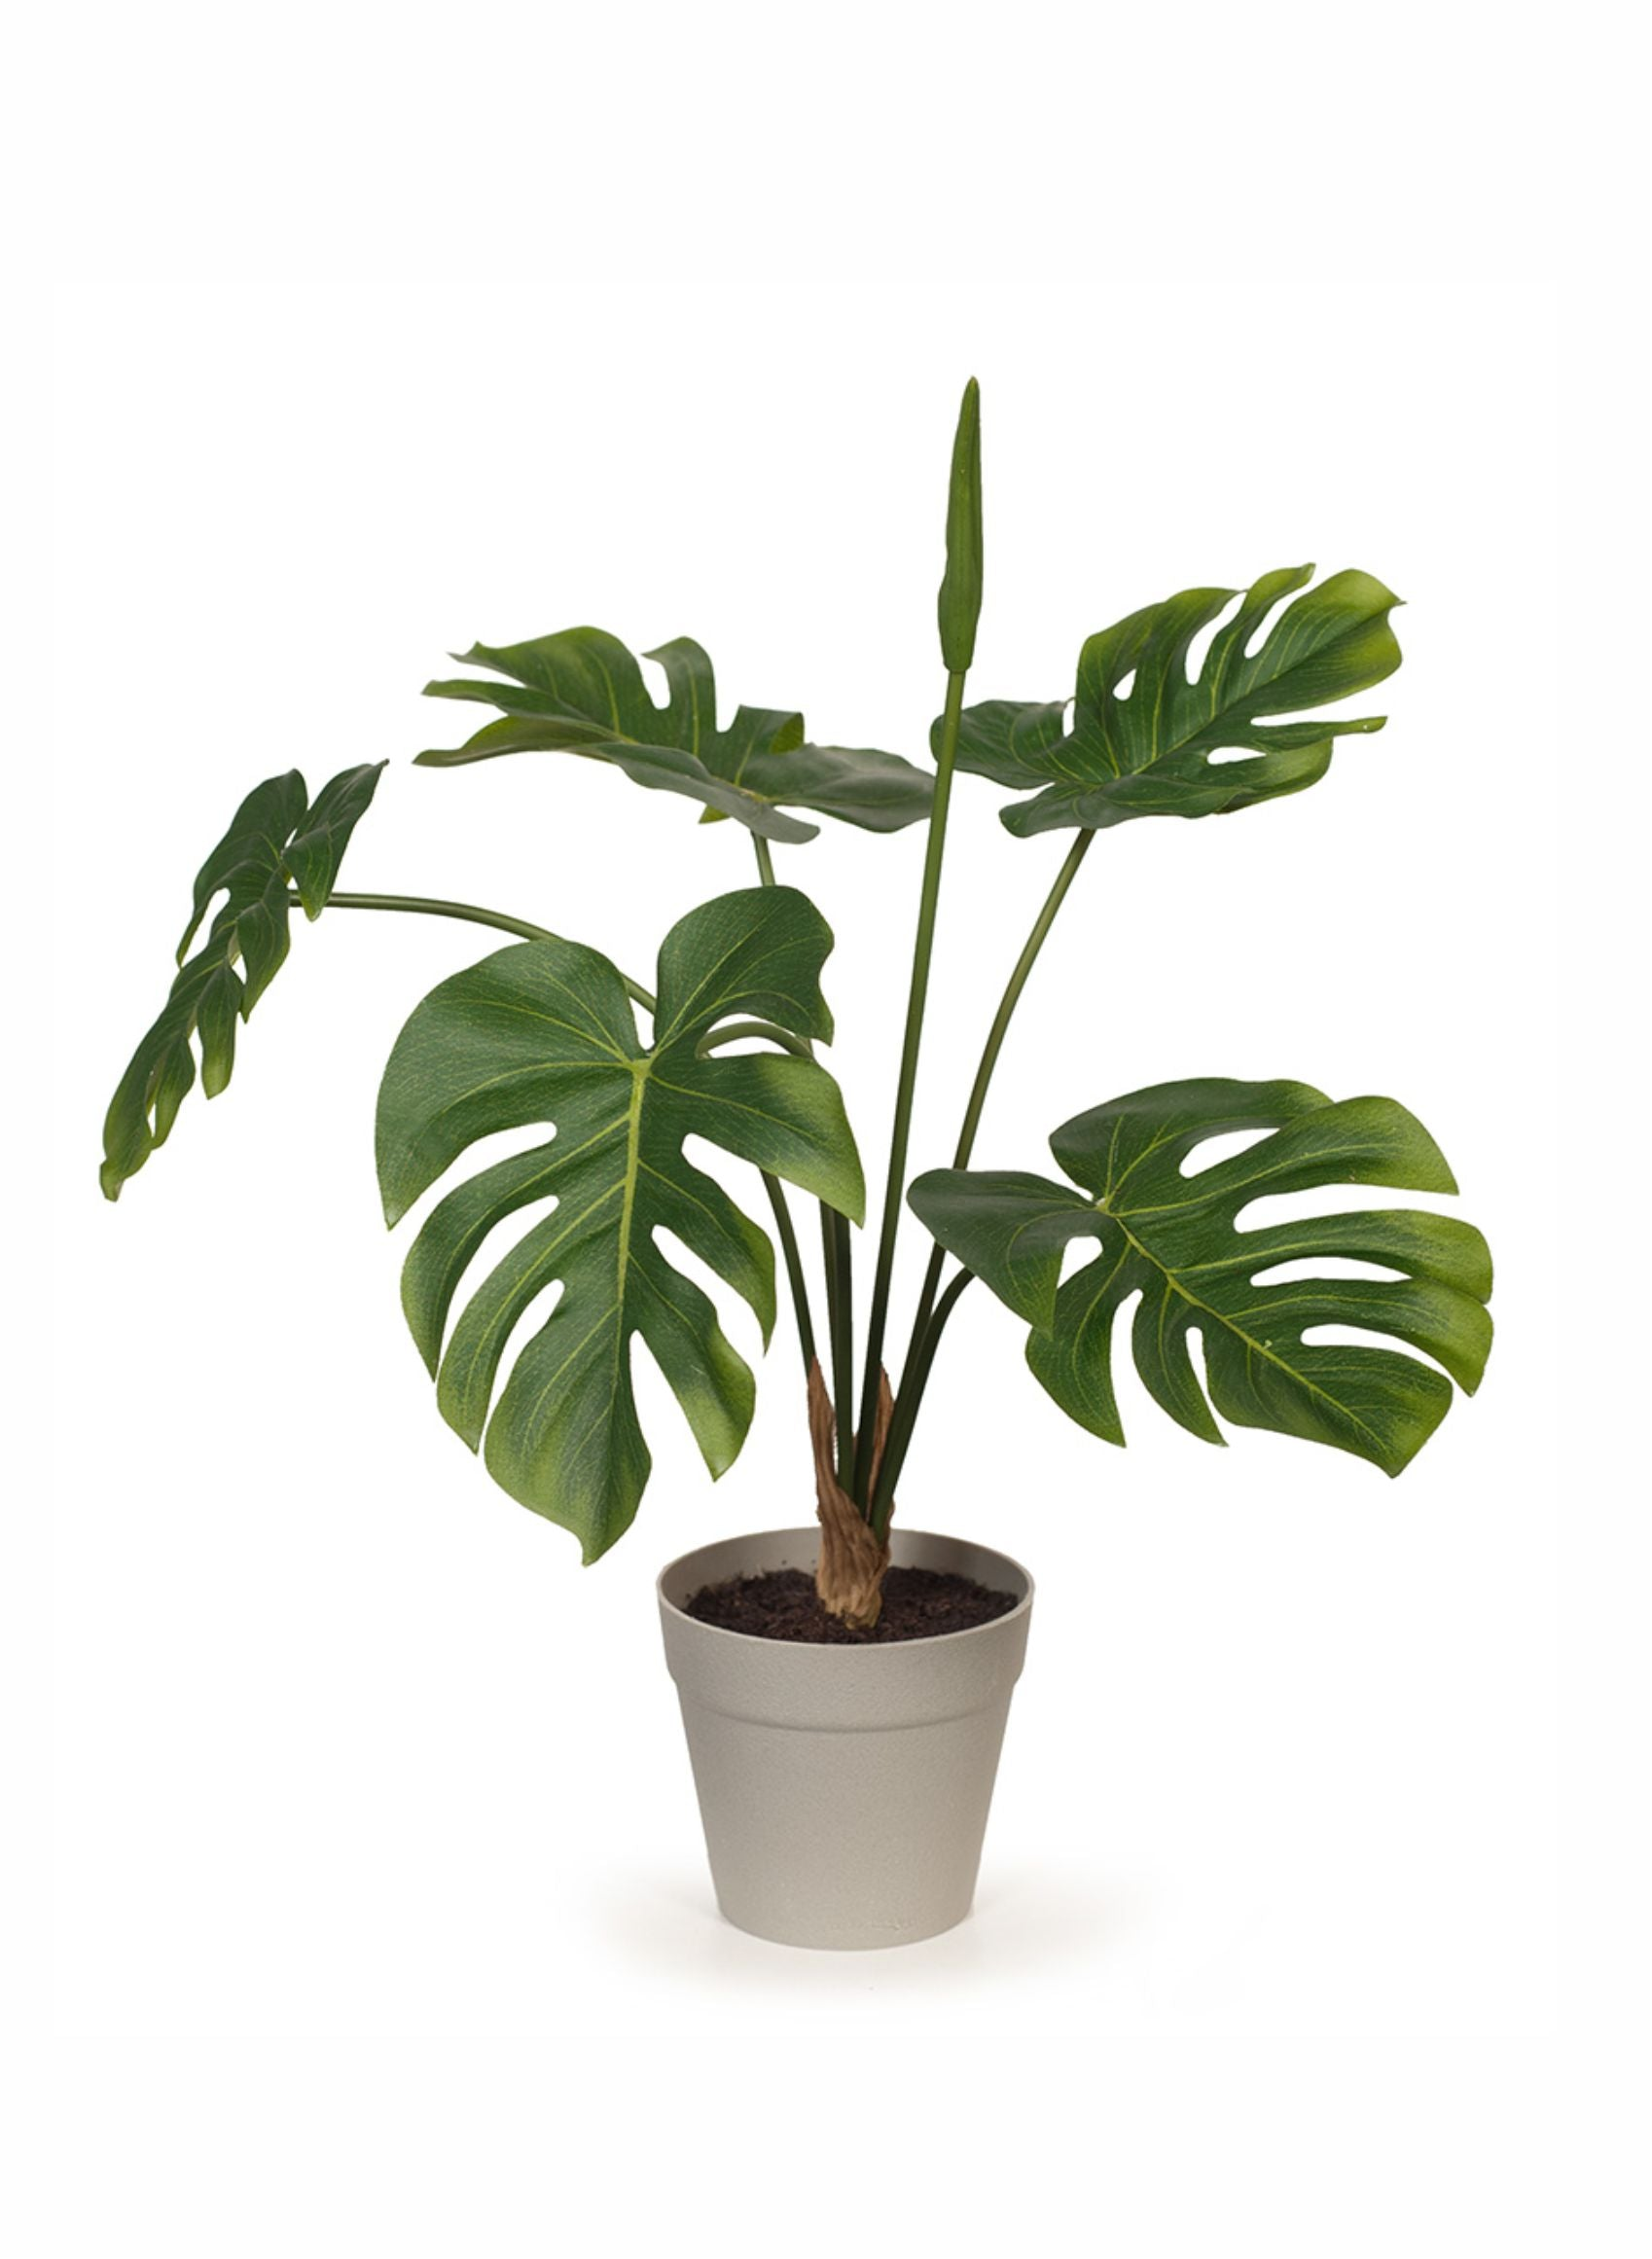 Monstera plant in pot